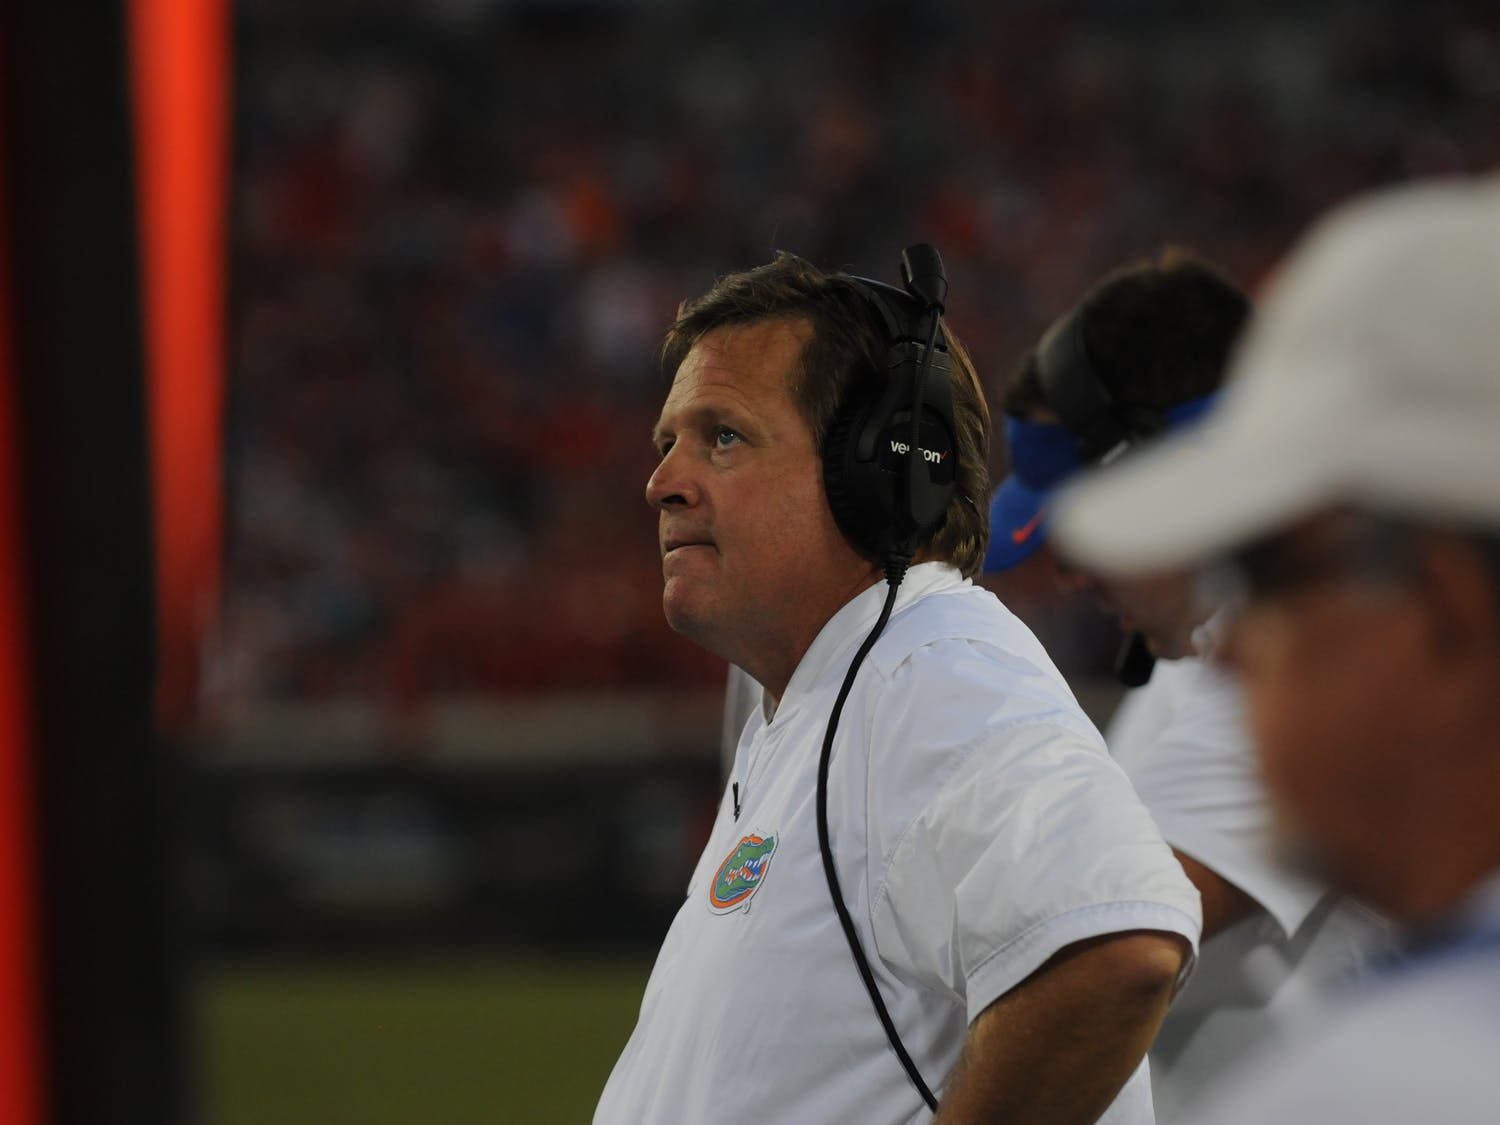 Coach Jim McElwain looks on during Florida's 24-10 win over Georgia on Oct. 29, 2016, in Jacksonville.